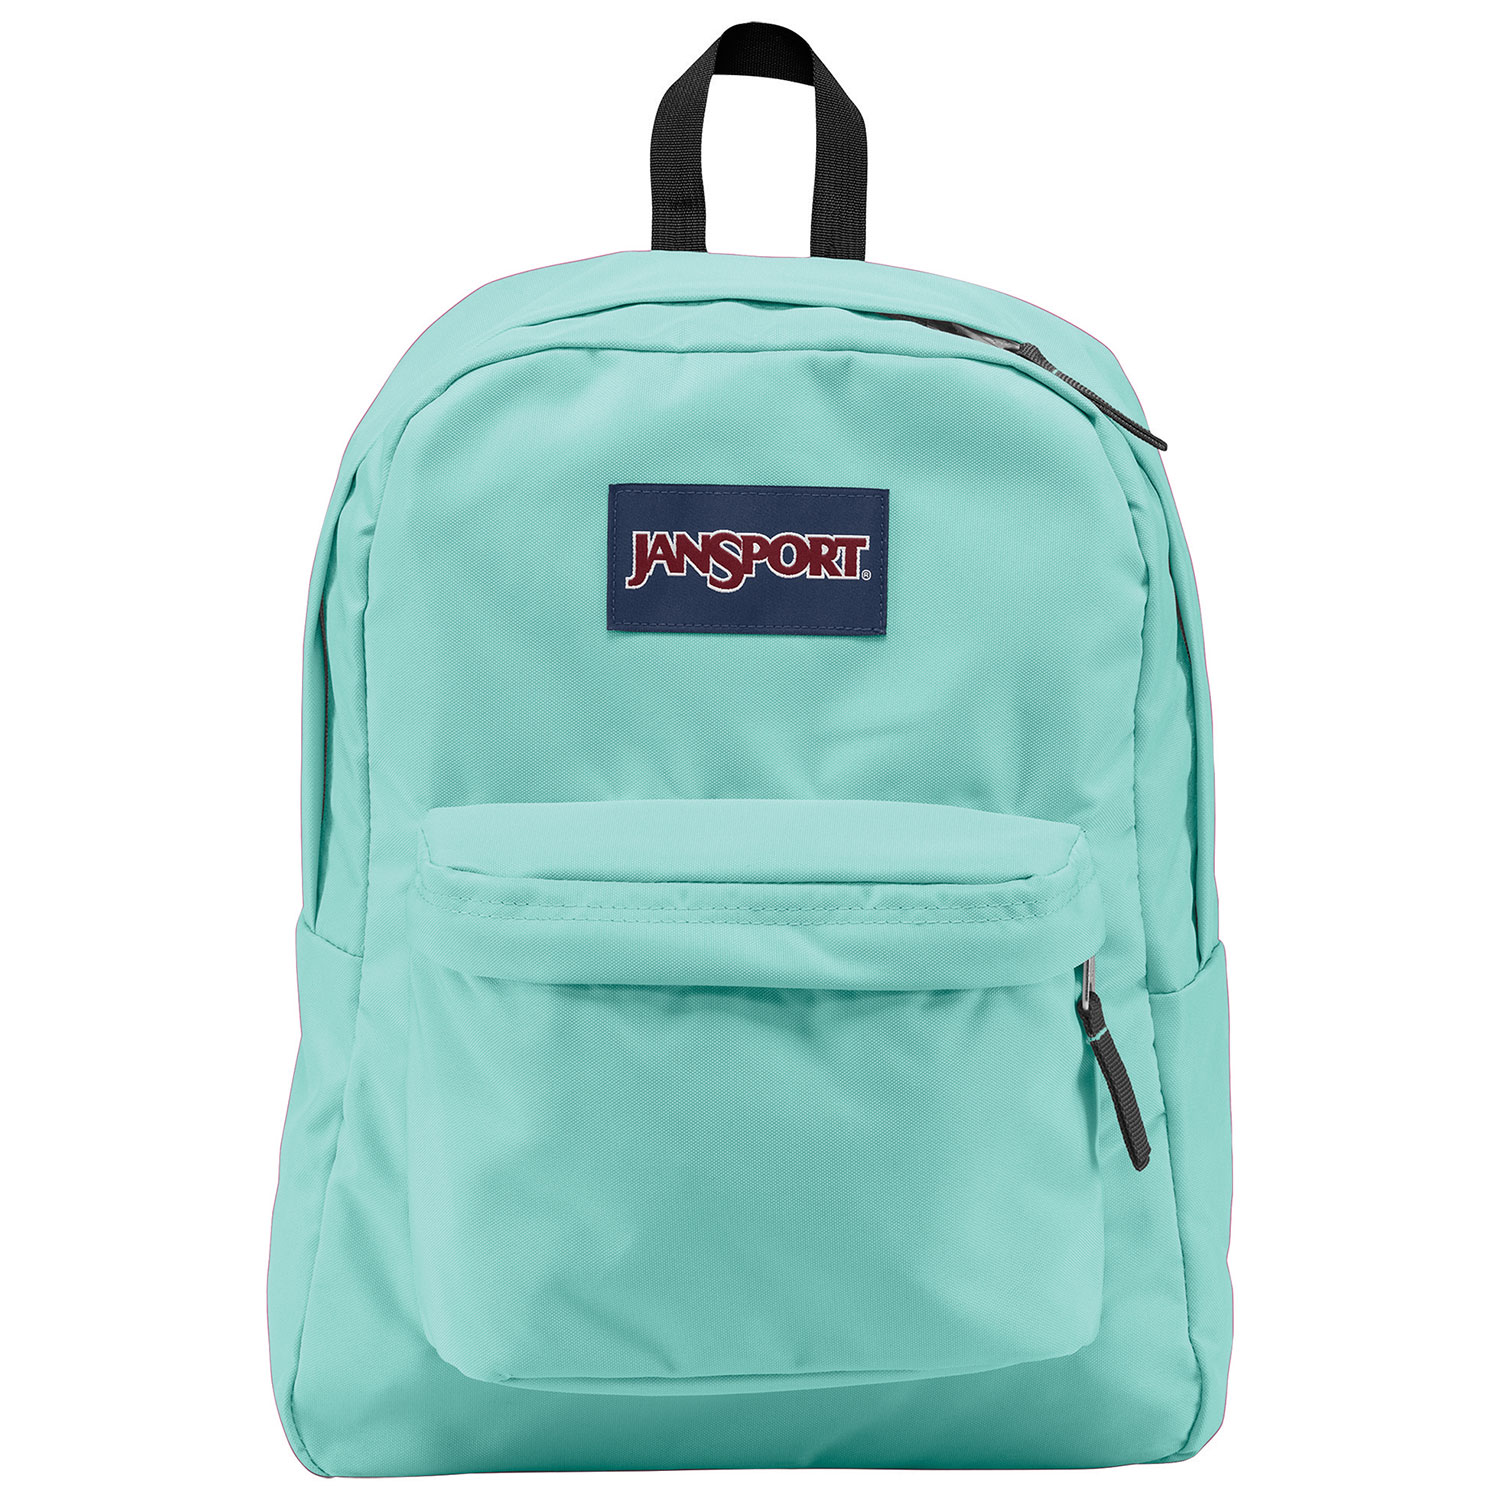 Sac à dos Jansport Aqua